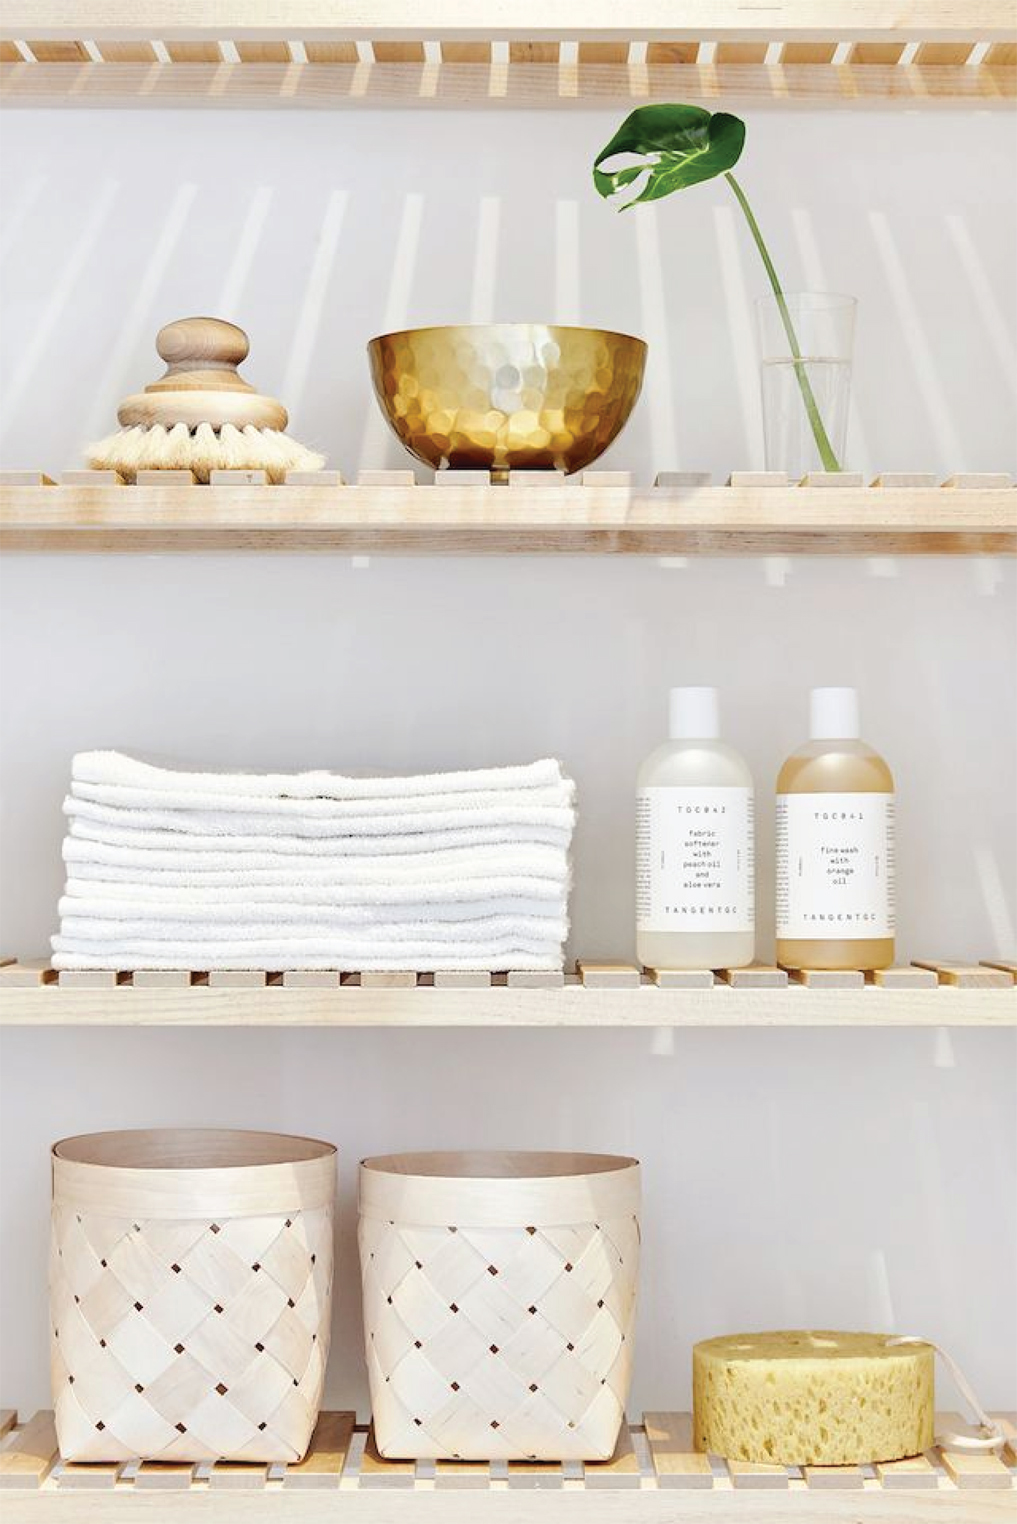 Simple Shelf Styling and Organization | Akin Design Studio